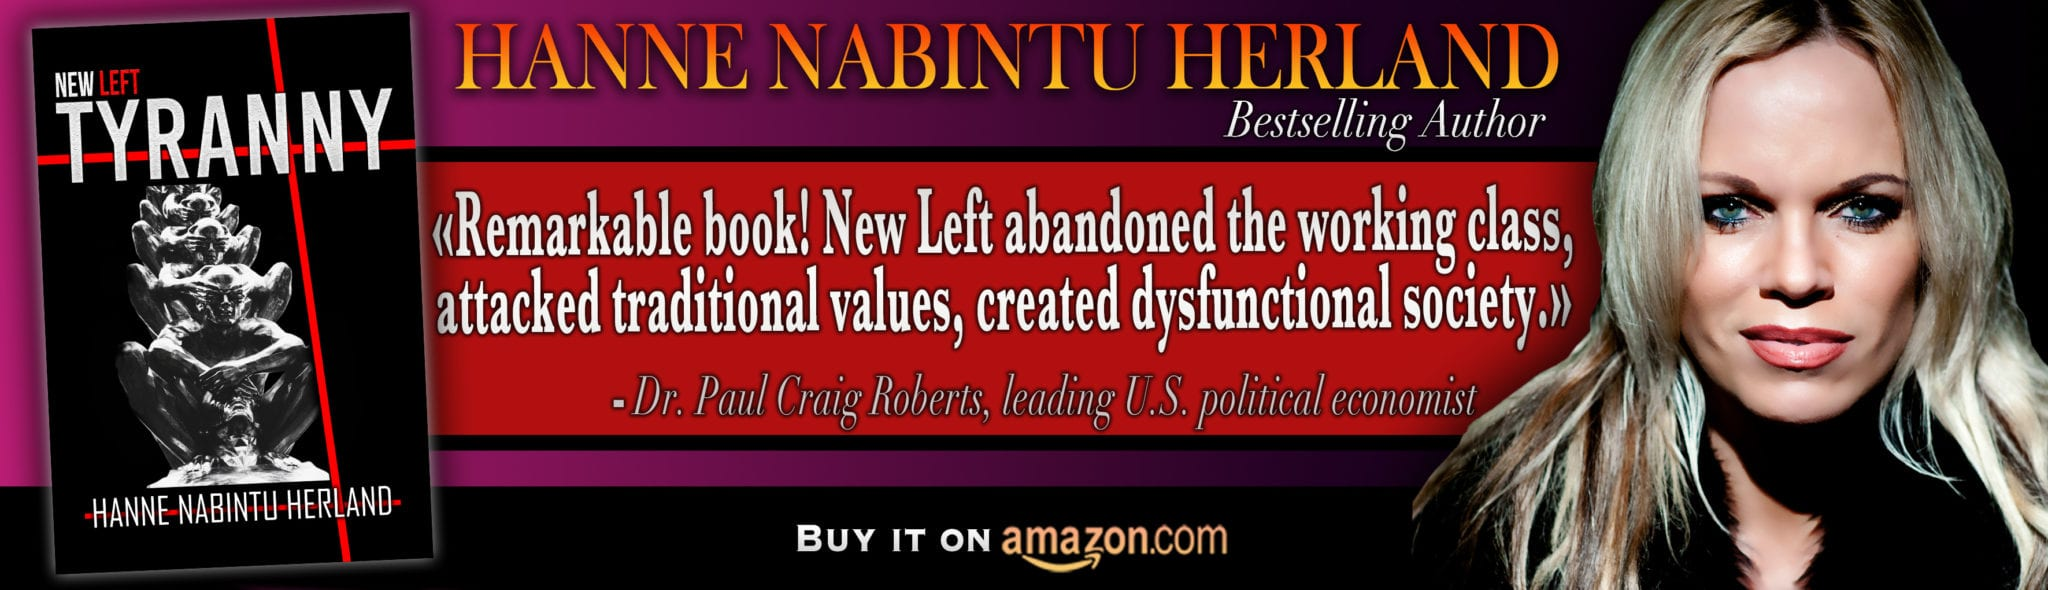 Politicized Gene Sharp riots is another attempted coup d'etat: New Left Tyranny, by bestselling author Hanne Nabintu Herland